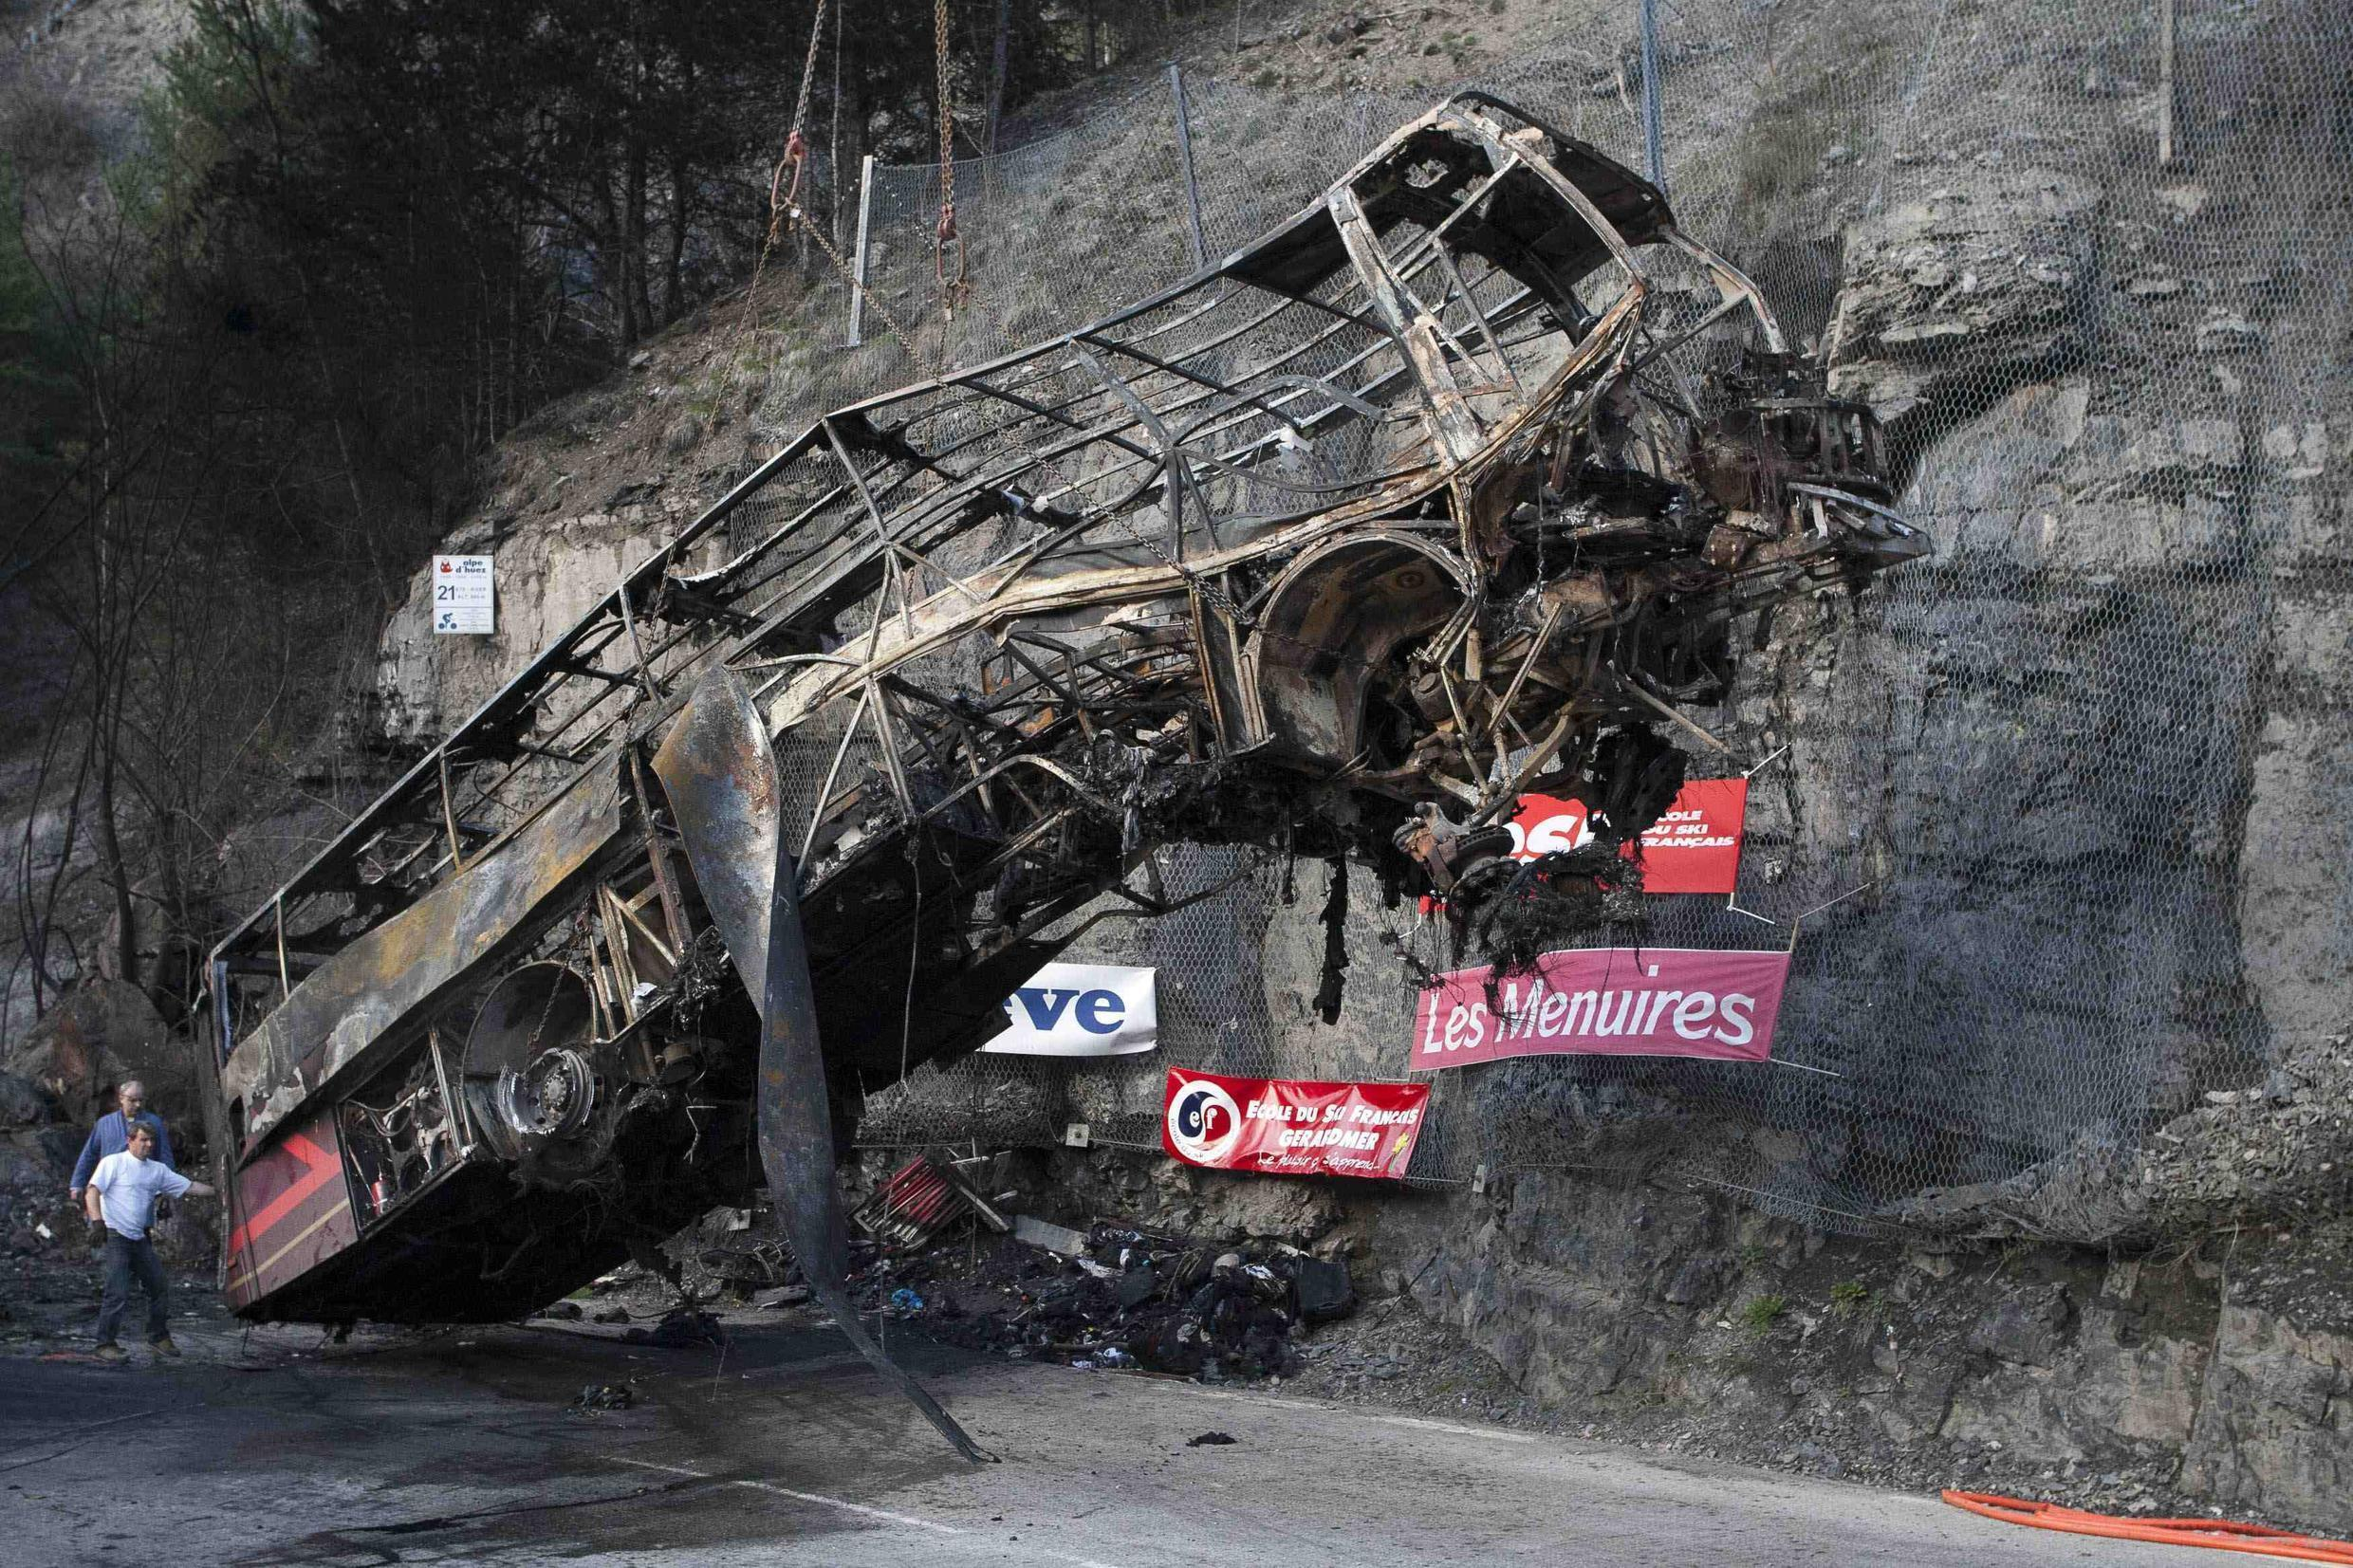 A crane hoists the frame of the bus which crashed and burned on the road from l'Alpe d'Huez